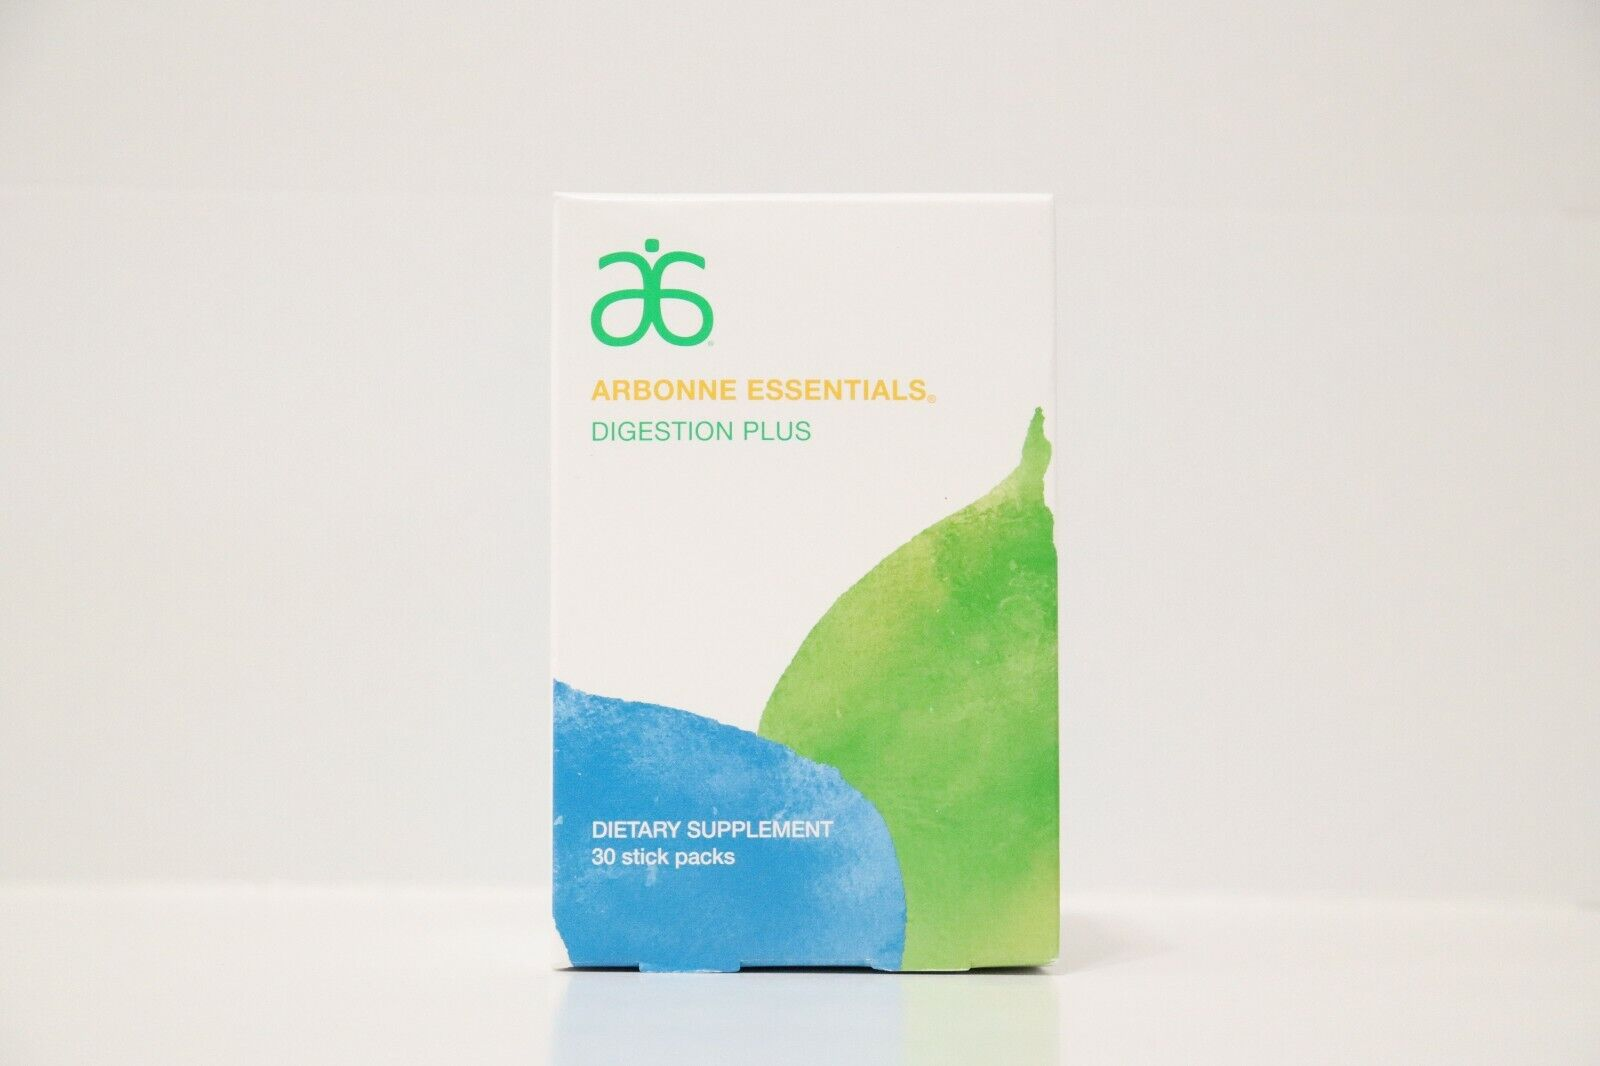 ARBONNE Essentials Digestion Plus 30 STICKS PACKS FREE SHIPPING!! AND FAST!!